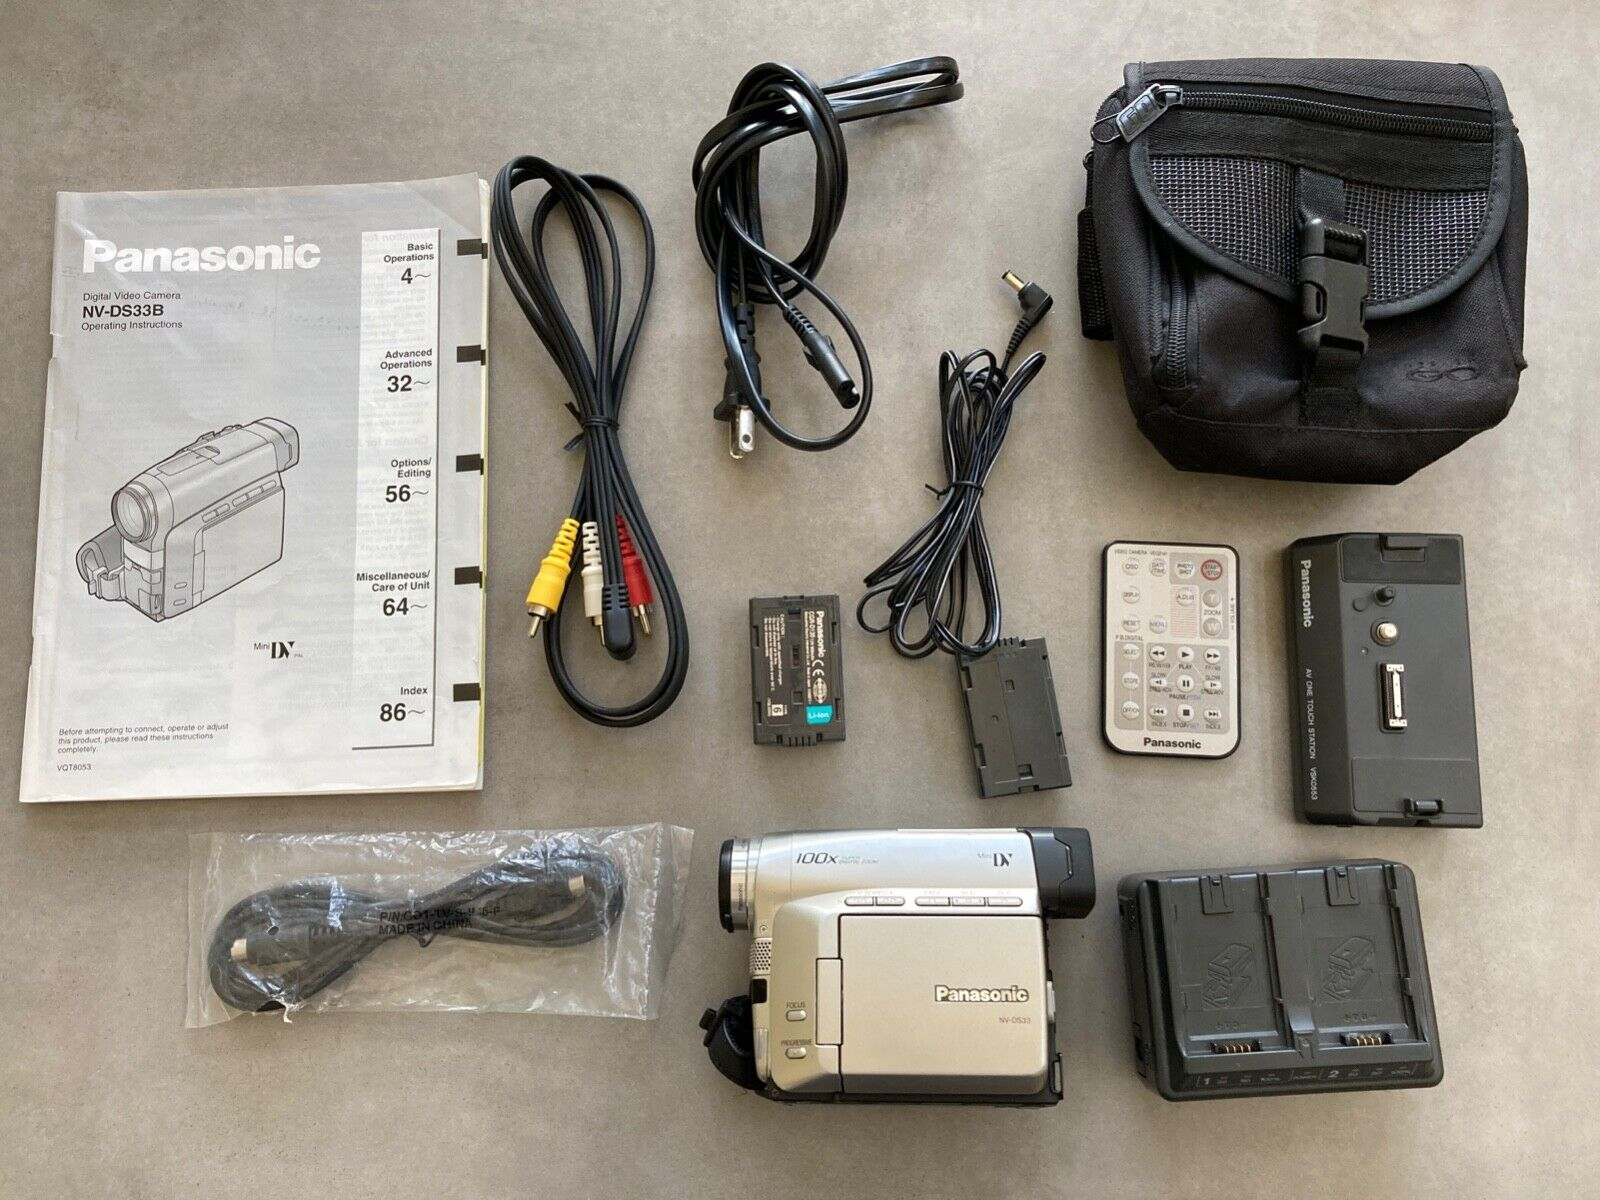 Vintage Panasonic Digital Video Camera NV-DS33B Complete With Case 100x Zoom - $35.00